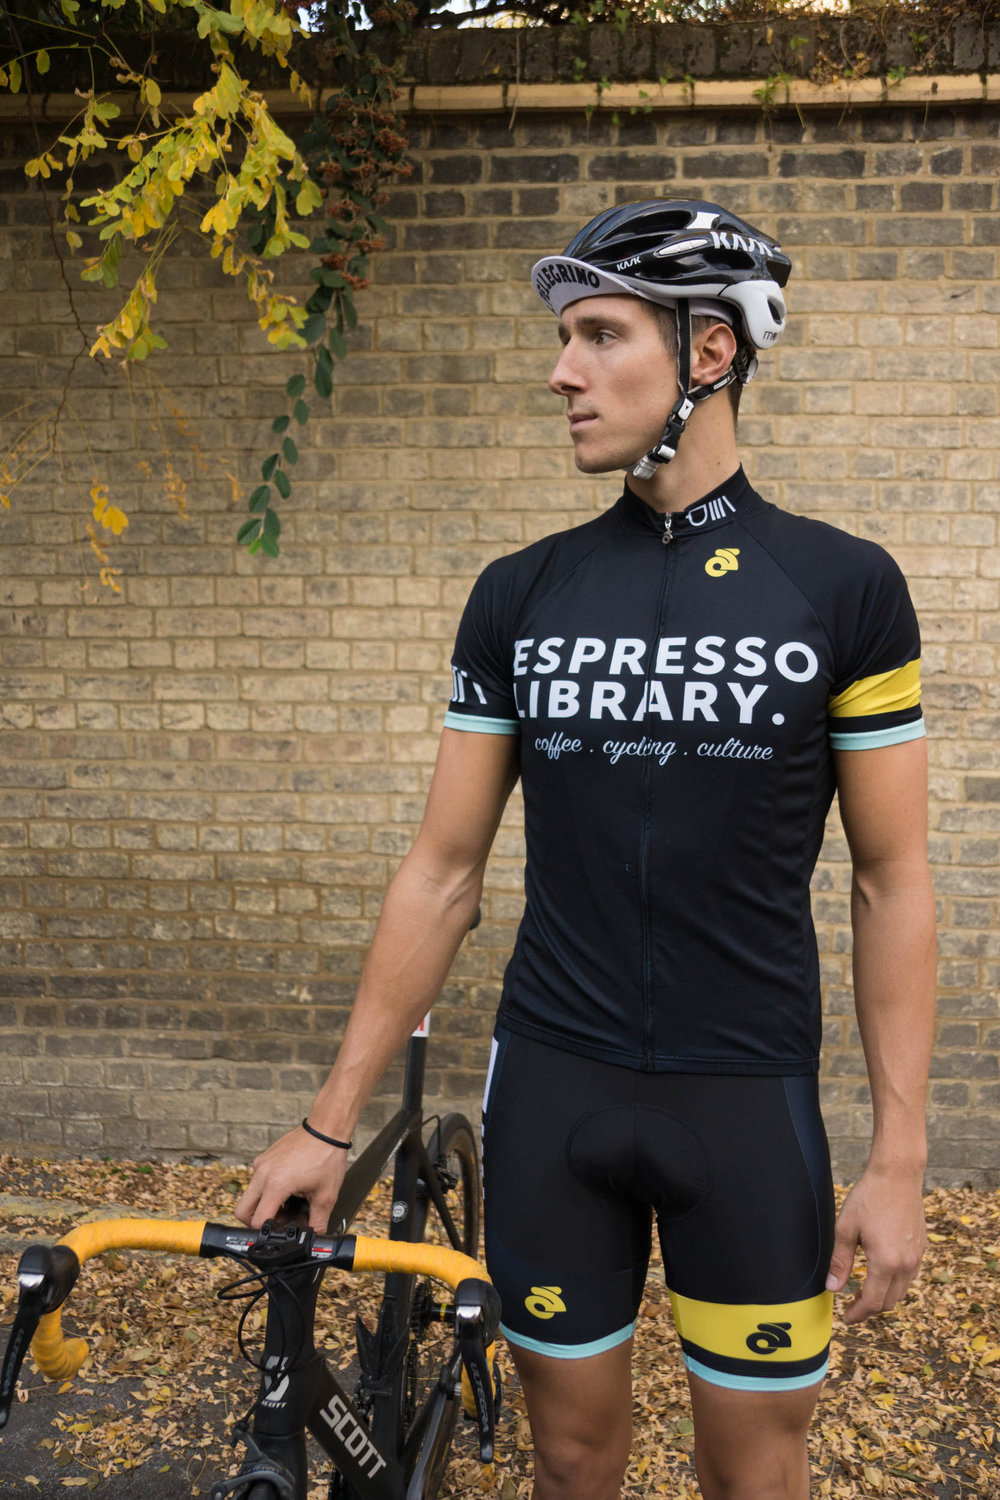 DO YOU LIKE OUR KIT? - We've got bib shorts & cycling jerseys available for purchase at the cafe...